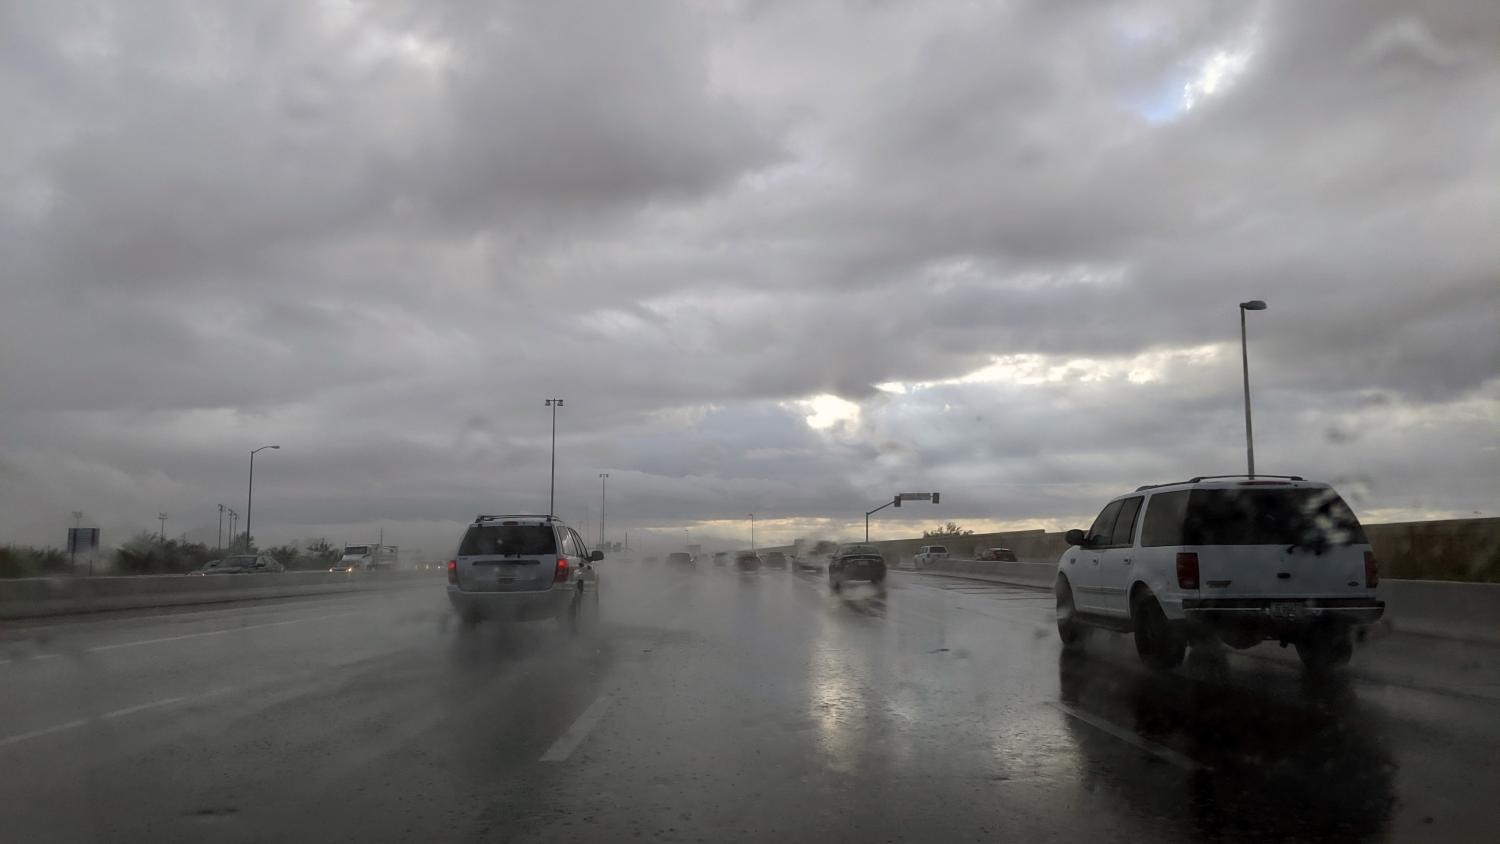 Rain on the Loop 202 in Phoenix on Sept. 23, 2019